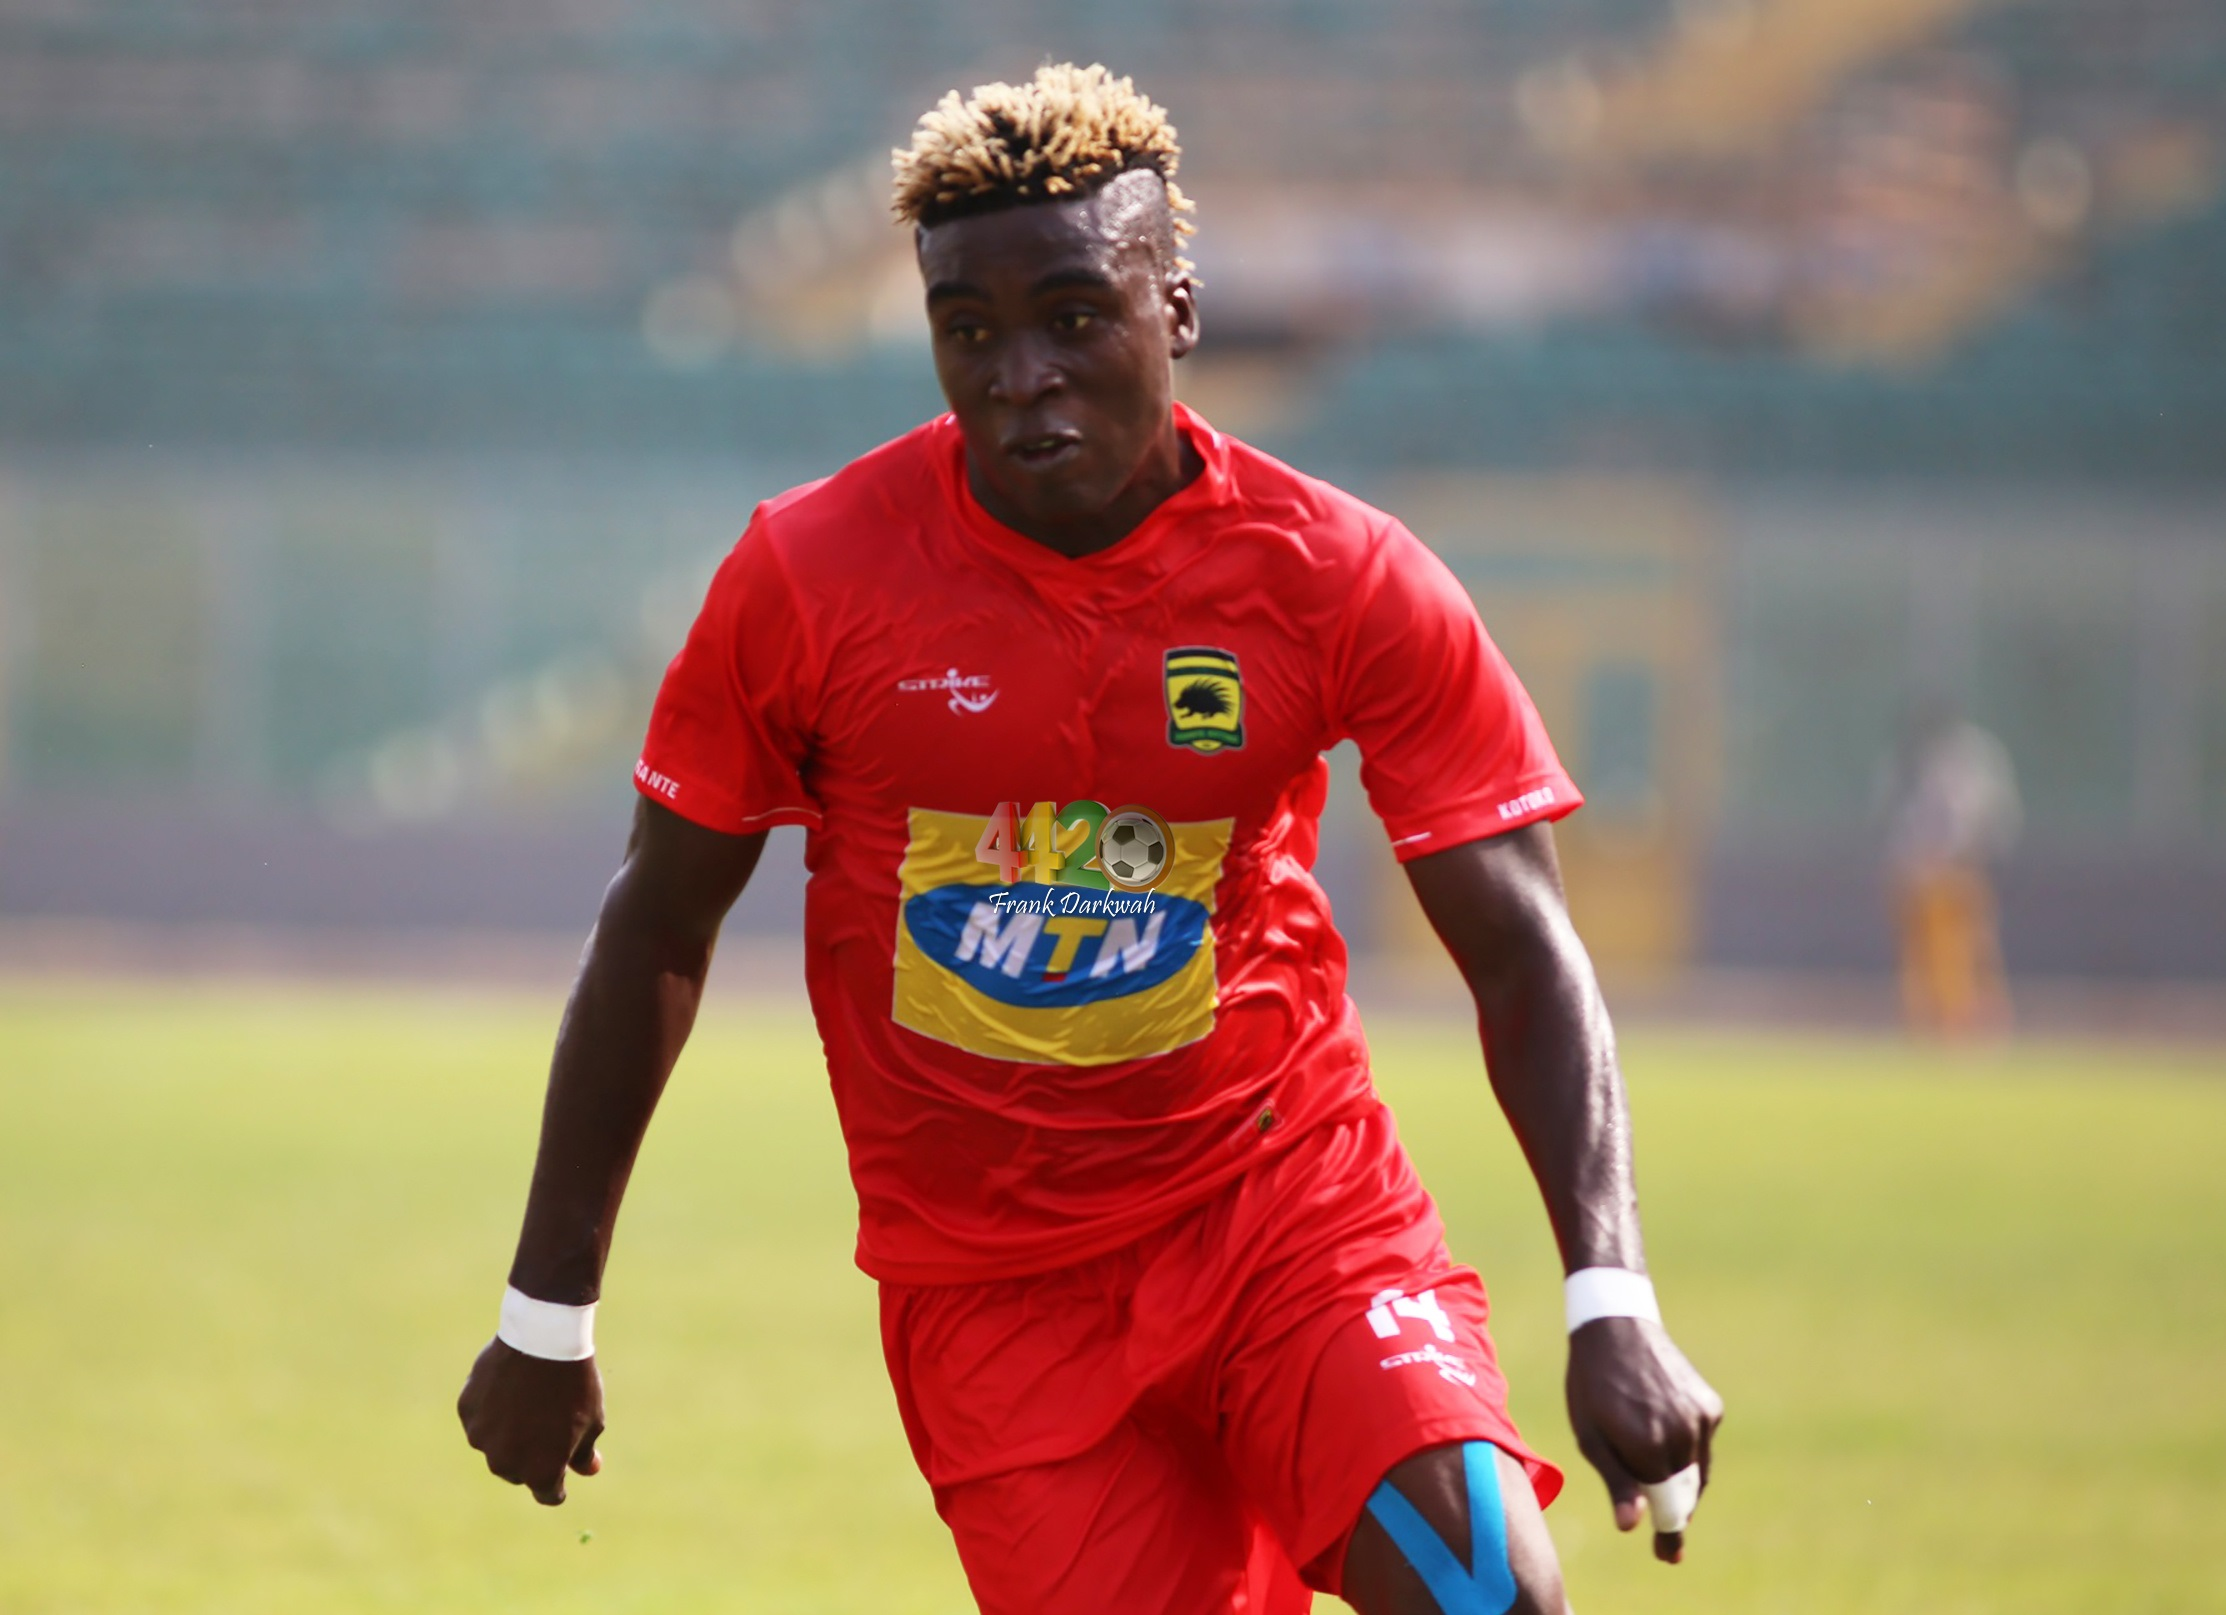 Kotoko has the best squad in Ghana at the moment - Patrick Yeboah